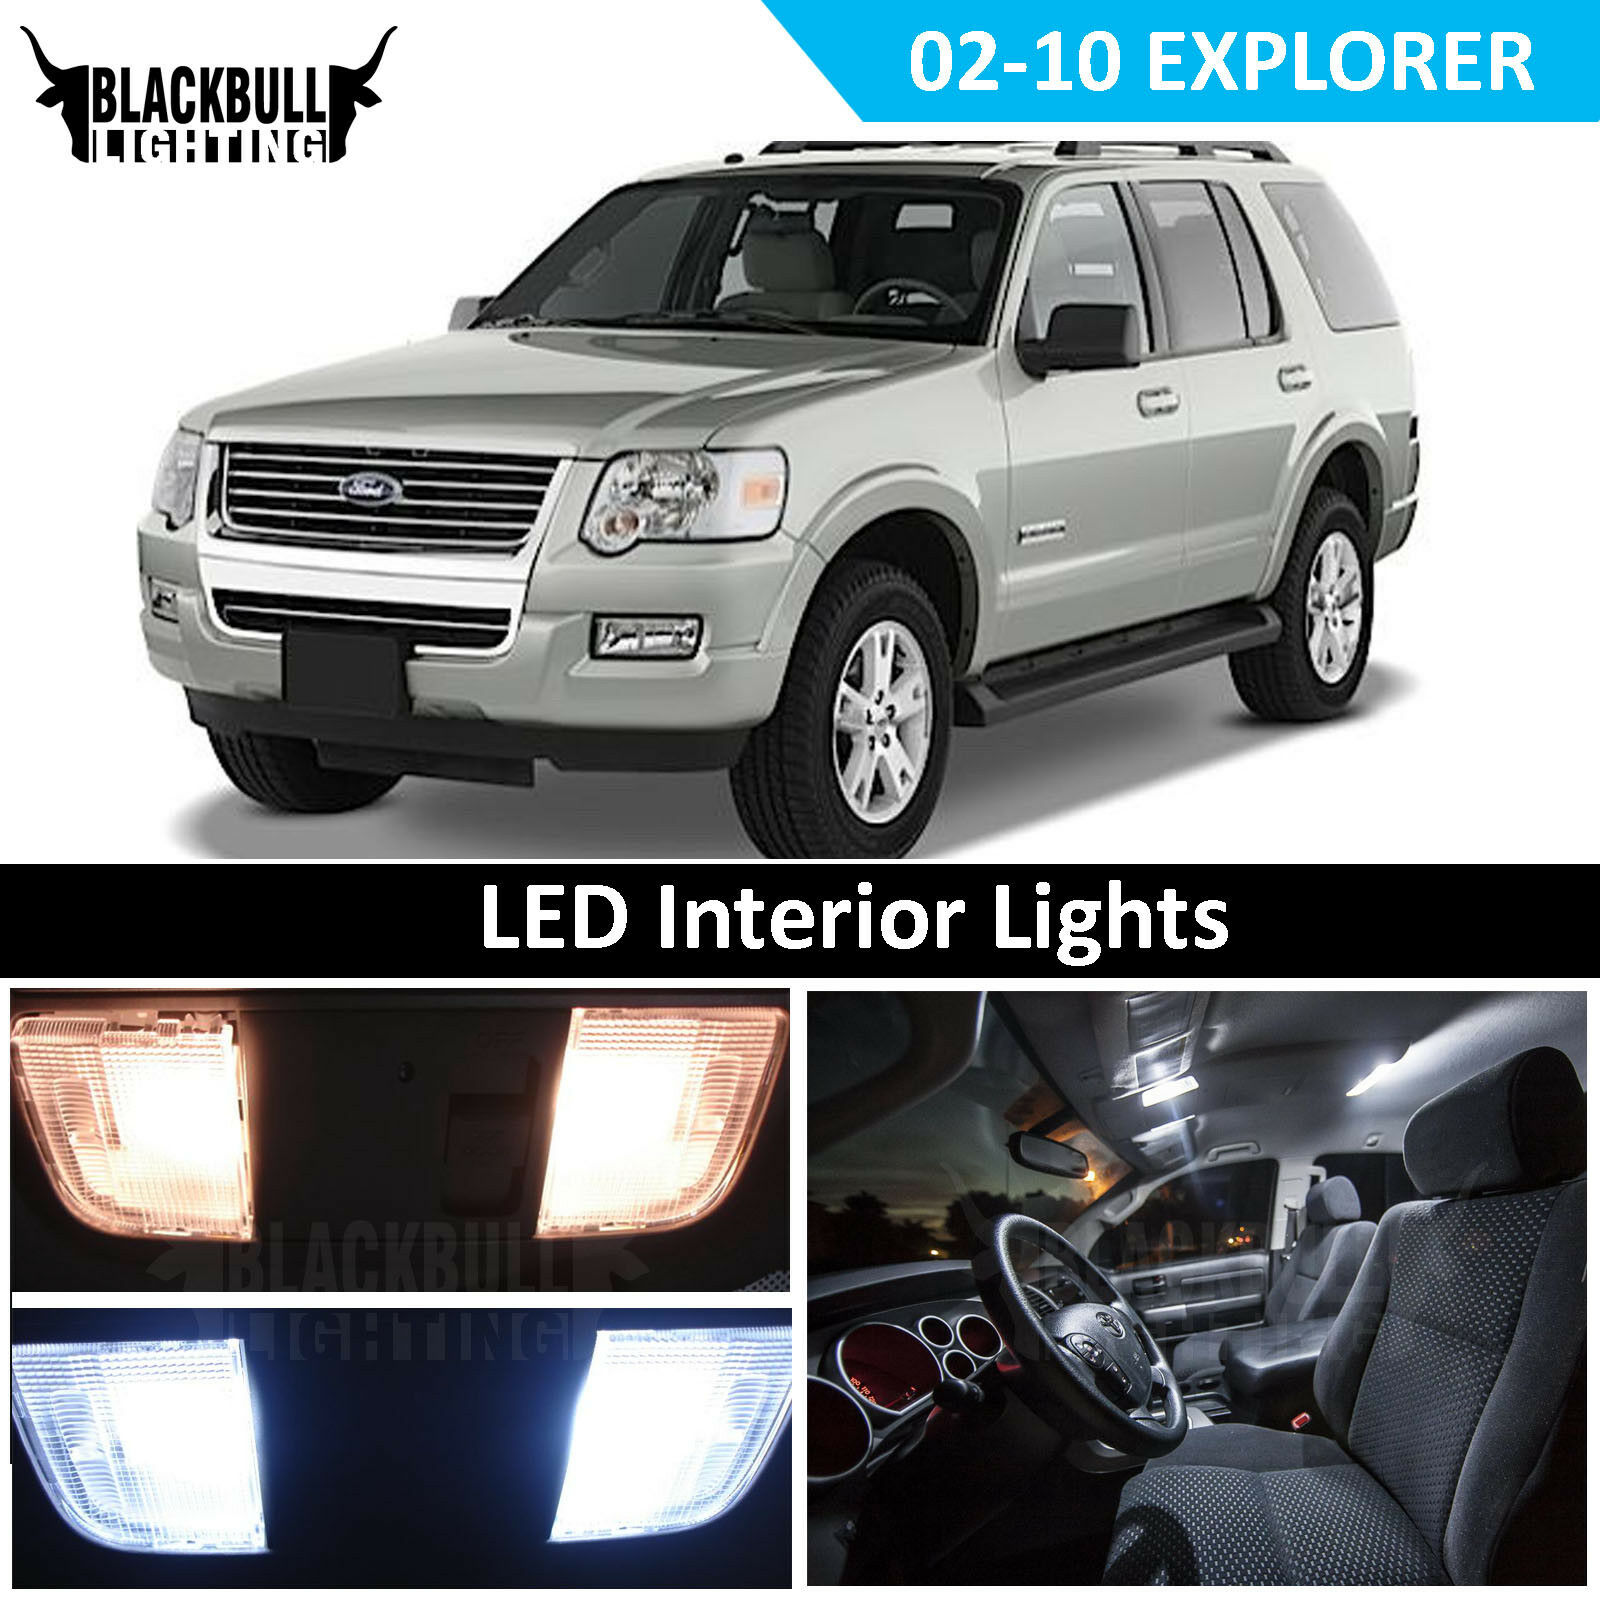 Details about White LED Interior Light Accessories Kit for 8-8 Ford  Explorer 8 bulbs